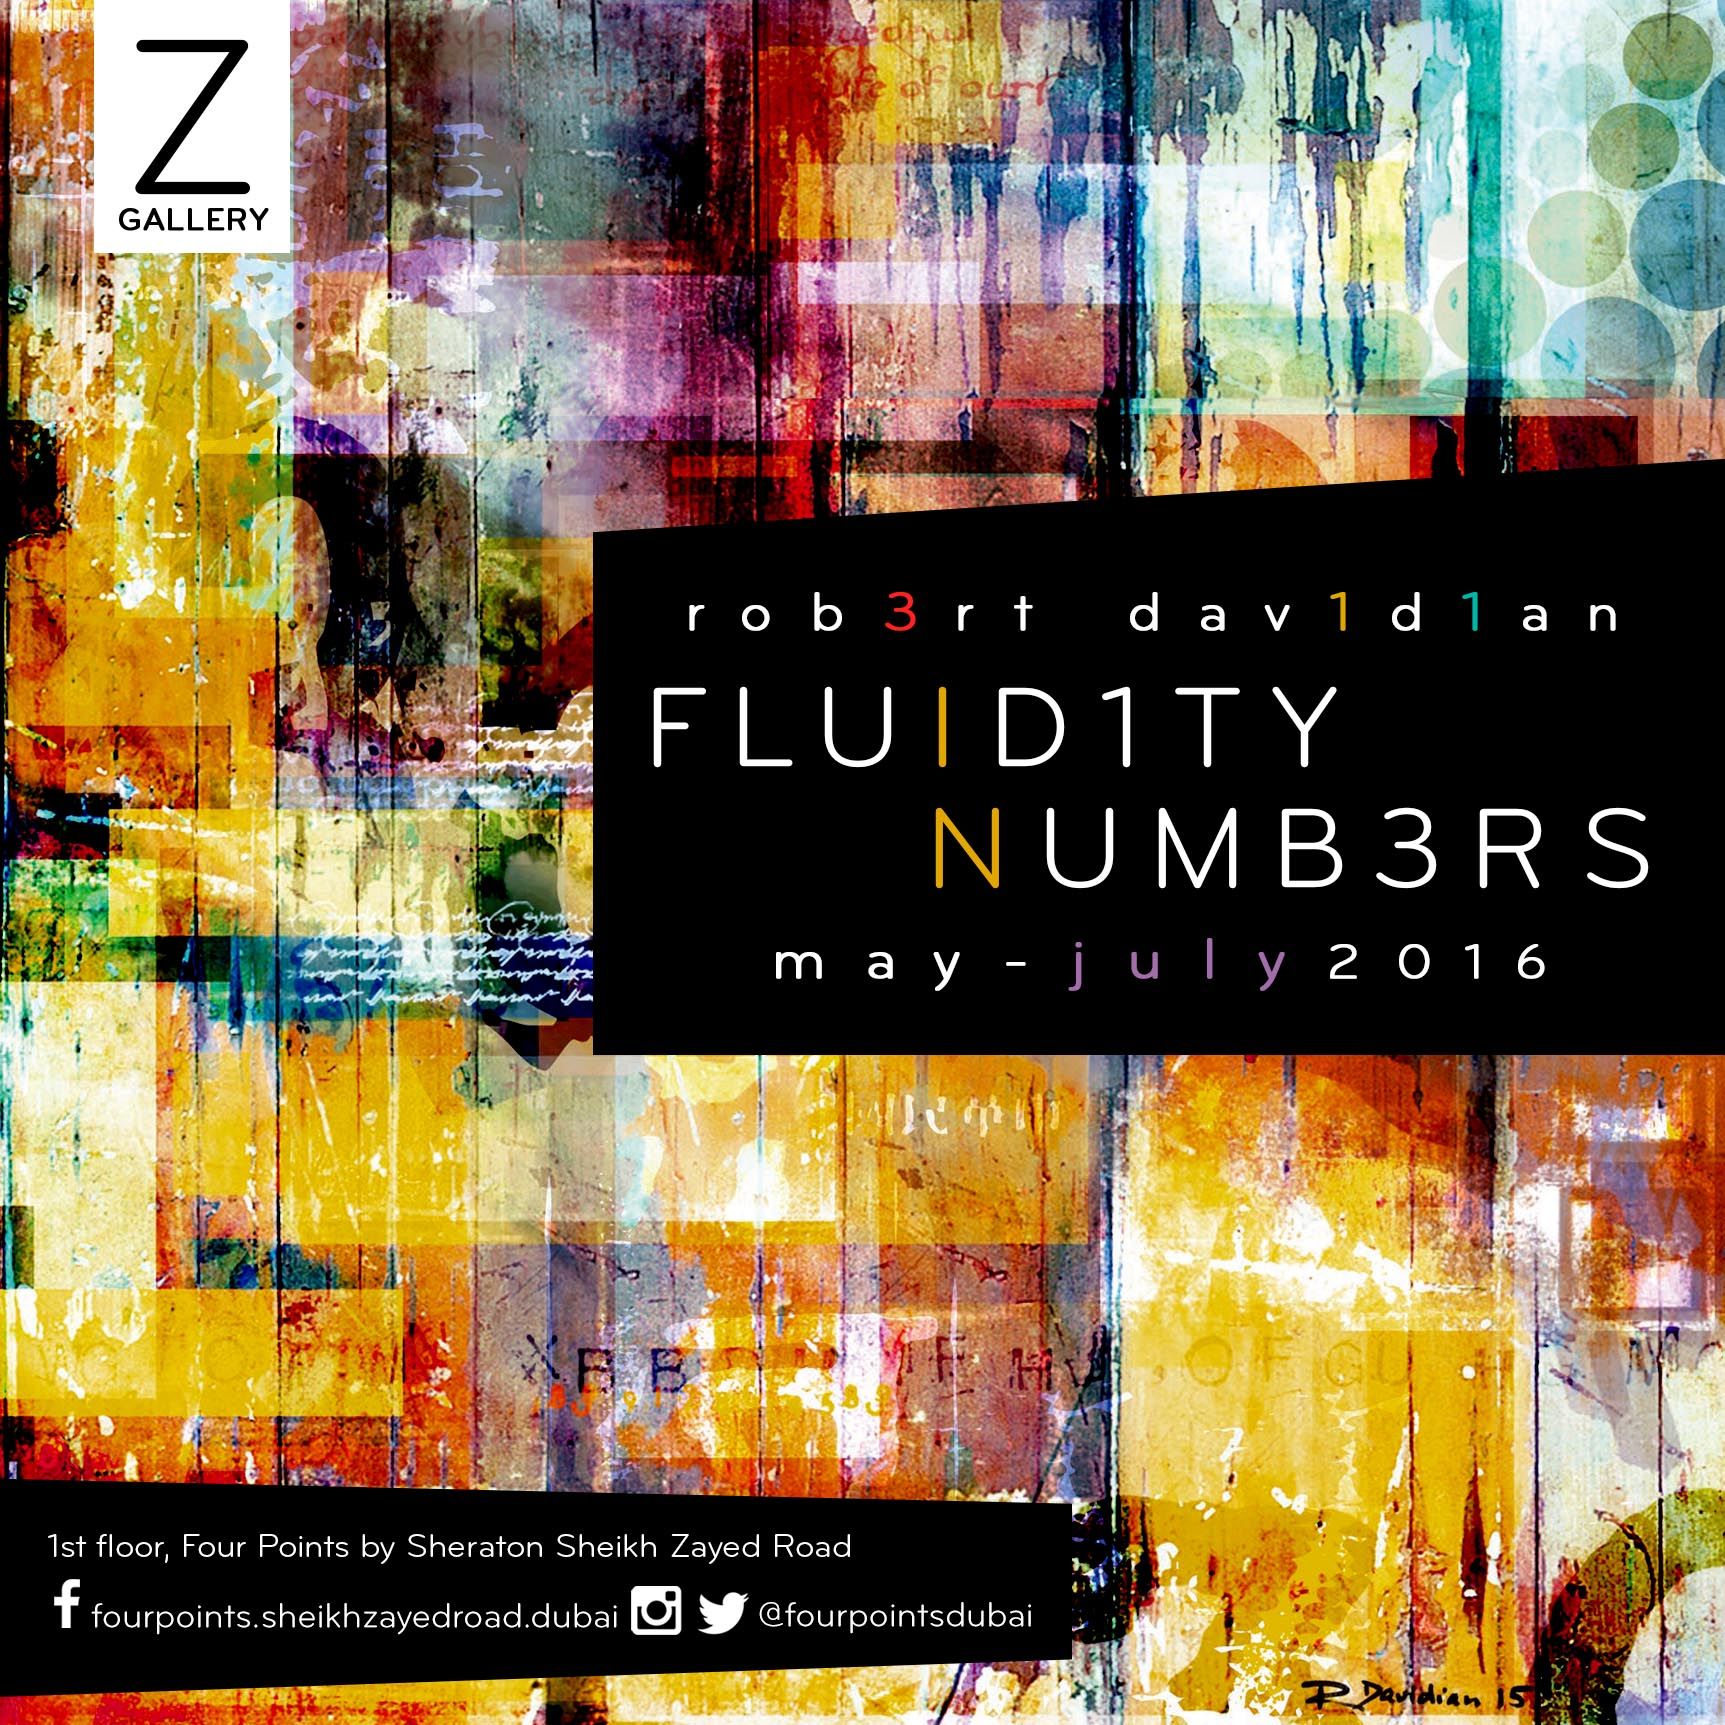 Fluidity in Numbers: Art Exhibition Showcases Numerically Inspired Paintings At The Z Gallery